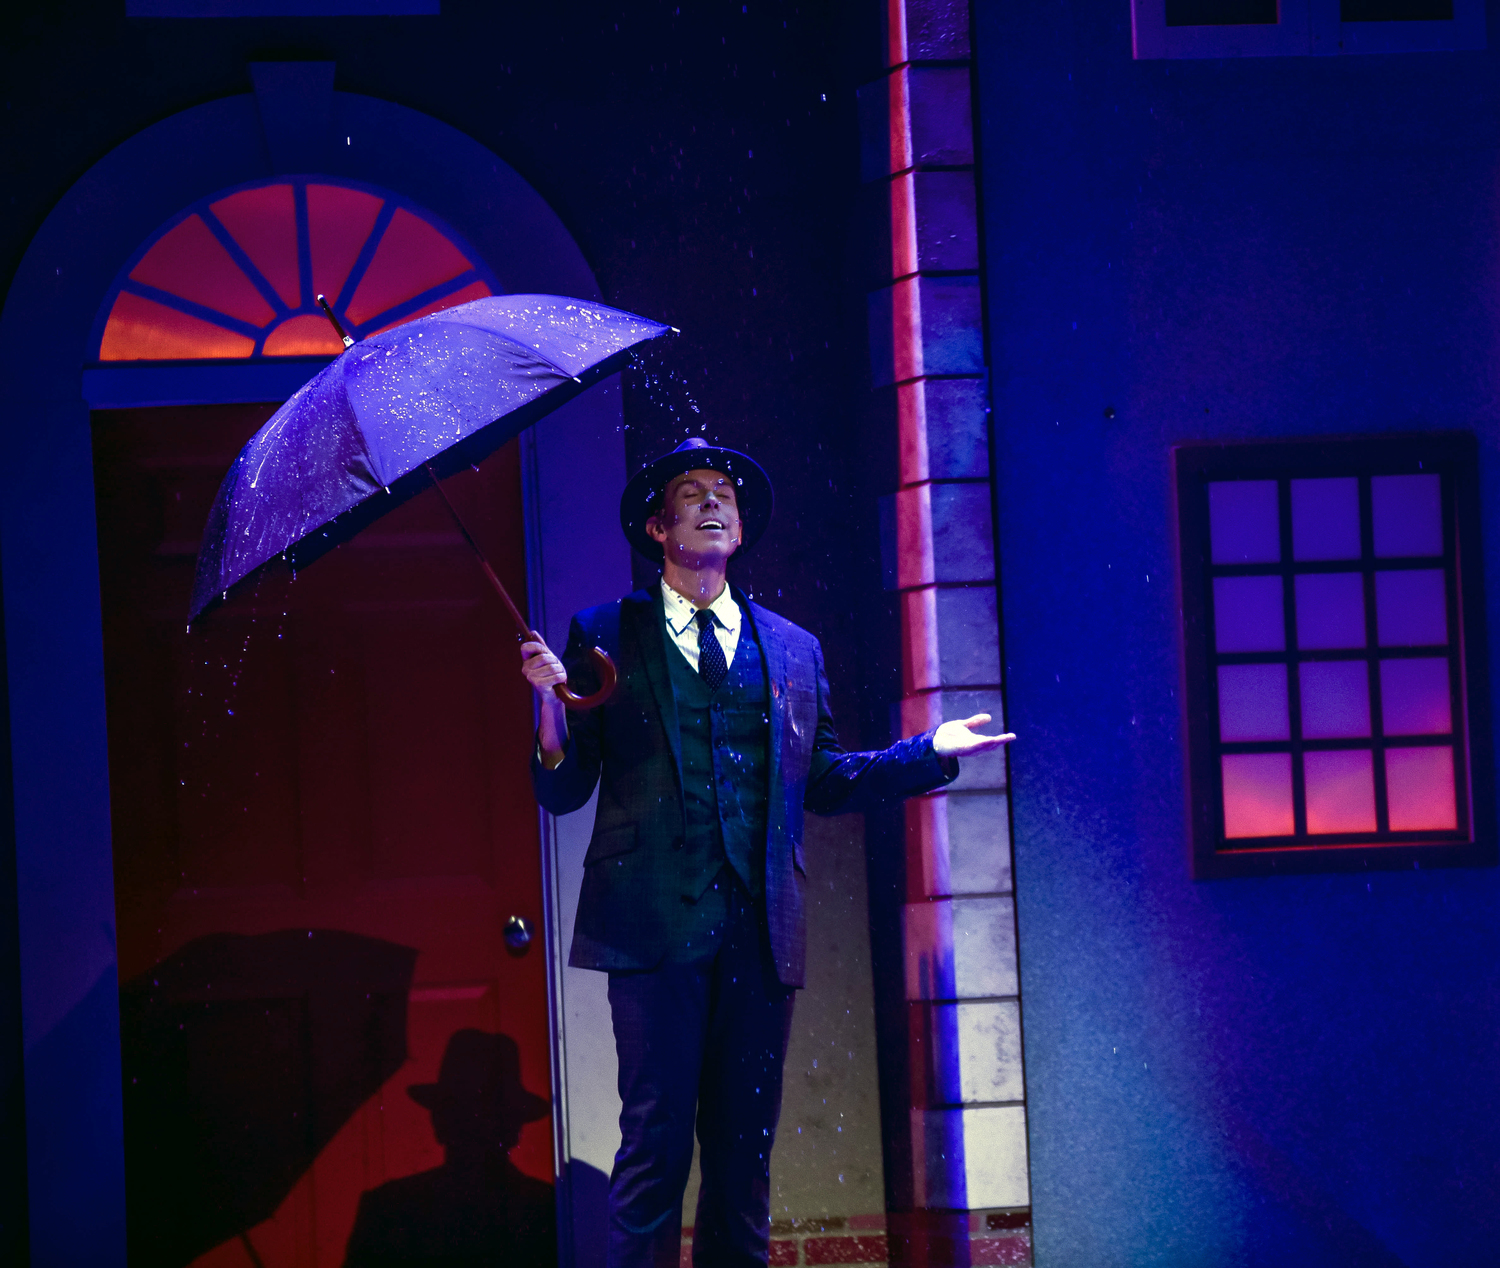 BWW Review: Lyric Theatre of Oklahoma's SINGIN' IN THE RAIN Showers Audiences with Nostalgia and Glam